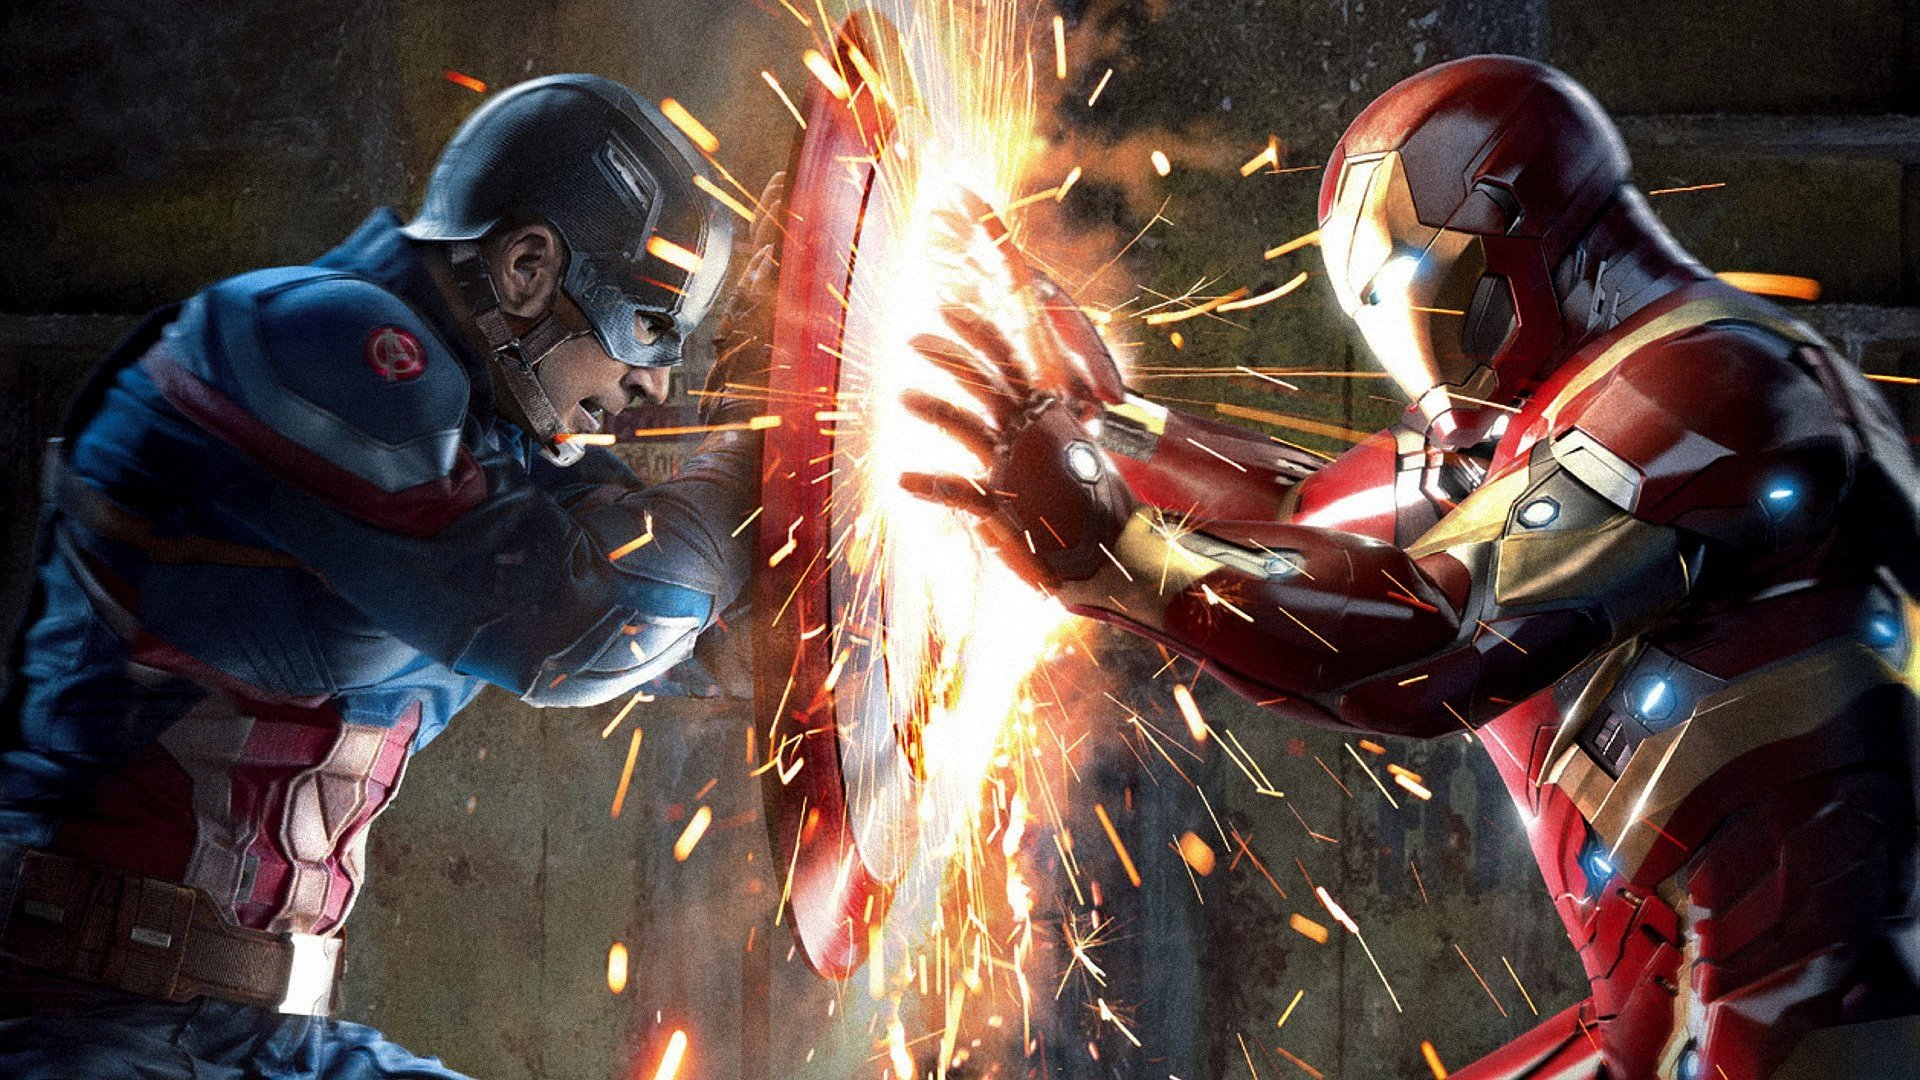 captain america: civil war full hd wallpaper and background image